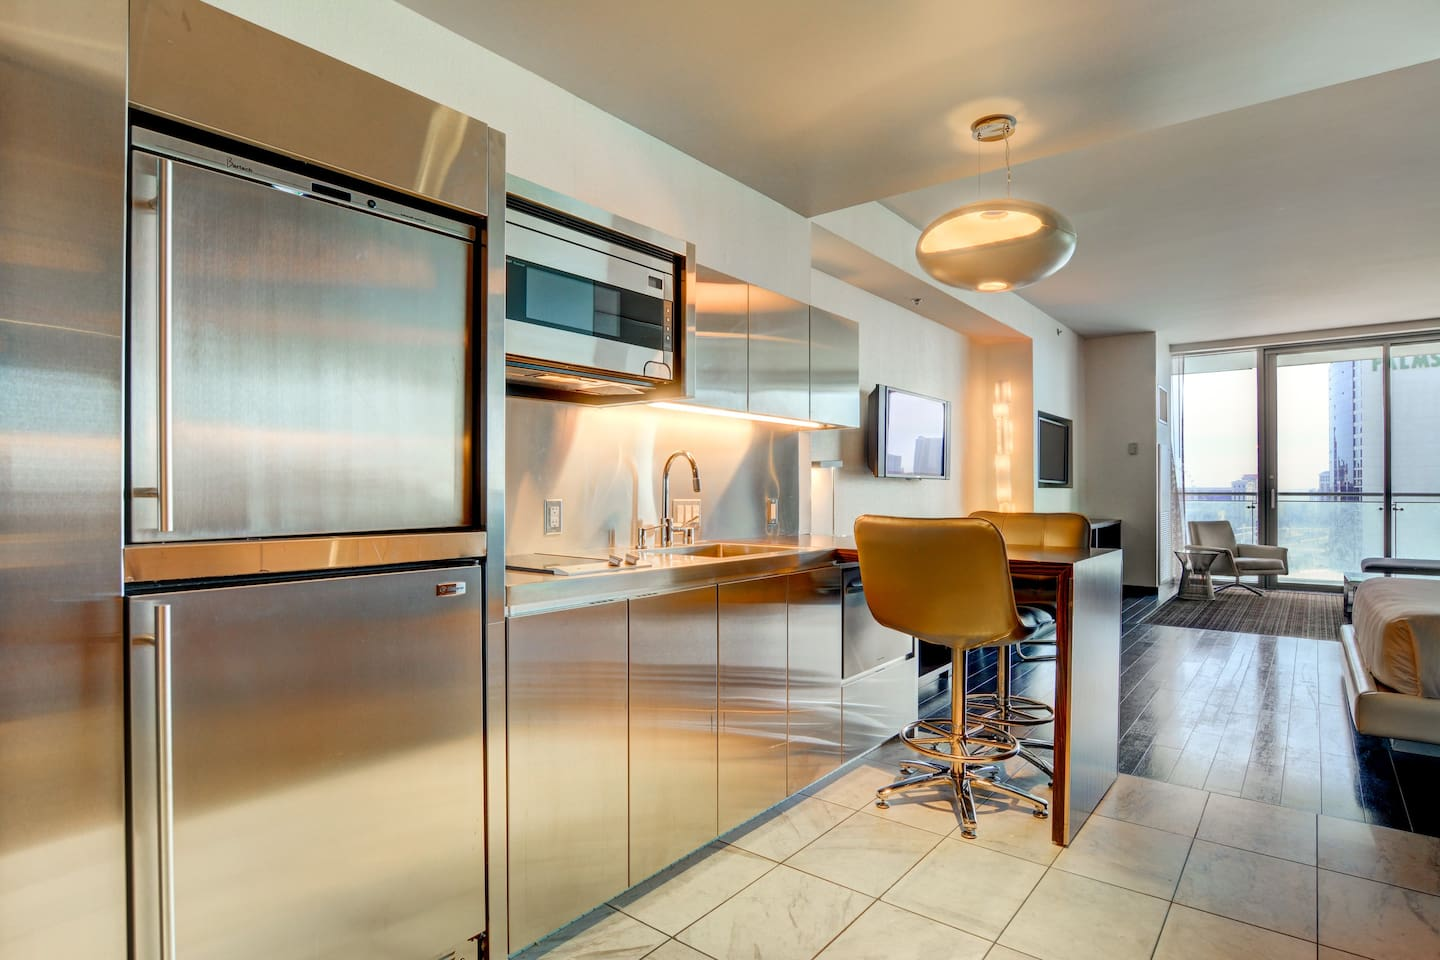 View of the suite and kitchenette